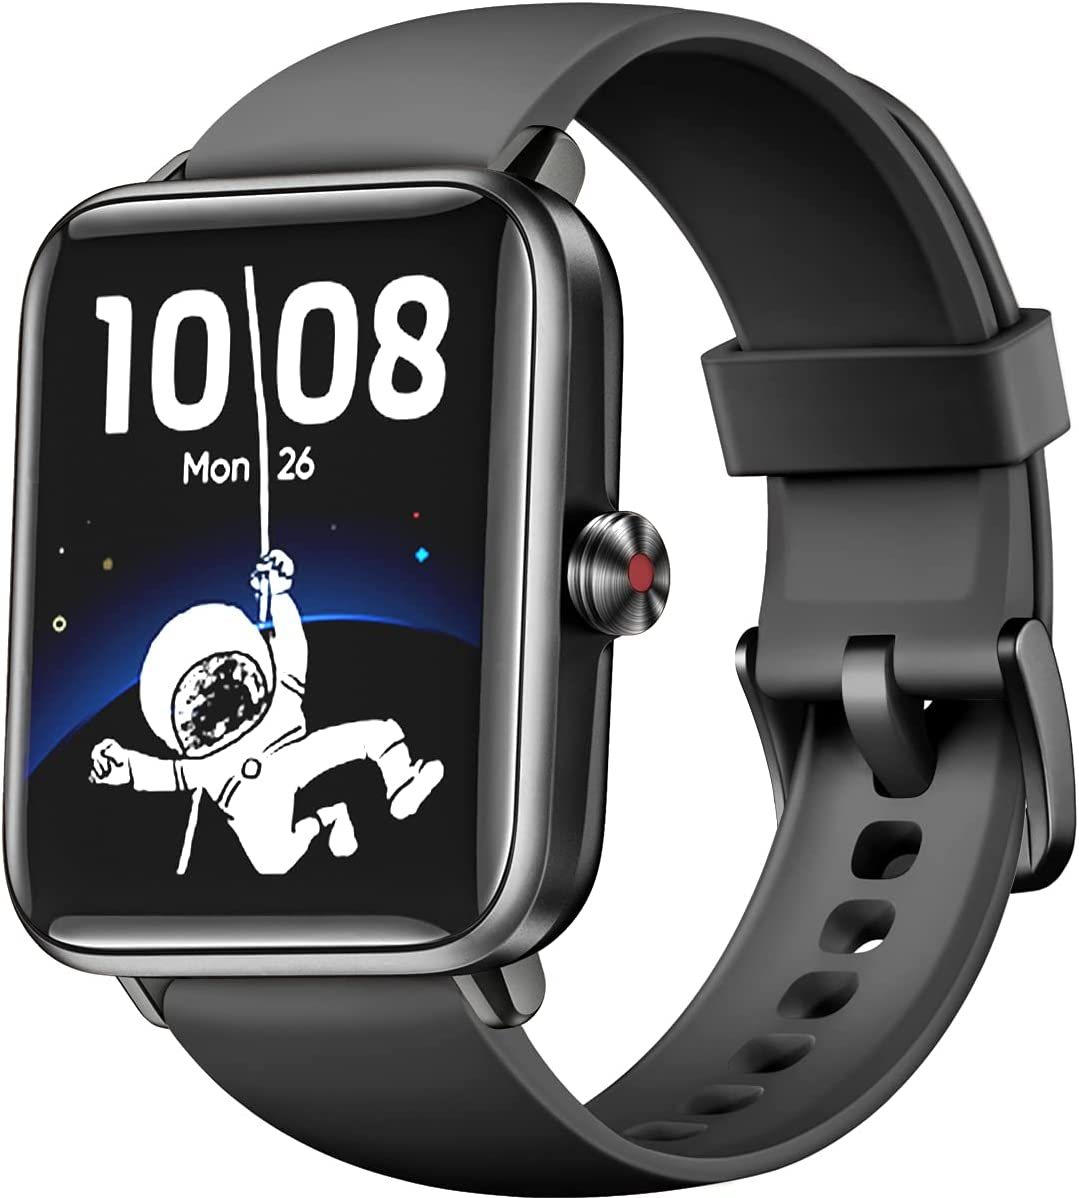 Dirrelo Smart Watch for Android Phones & iPhone Compatible, 1.55